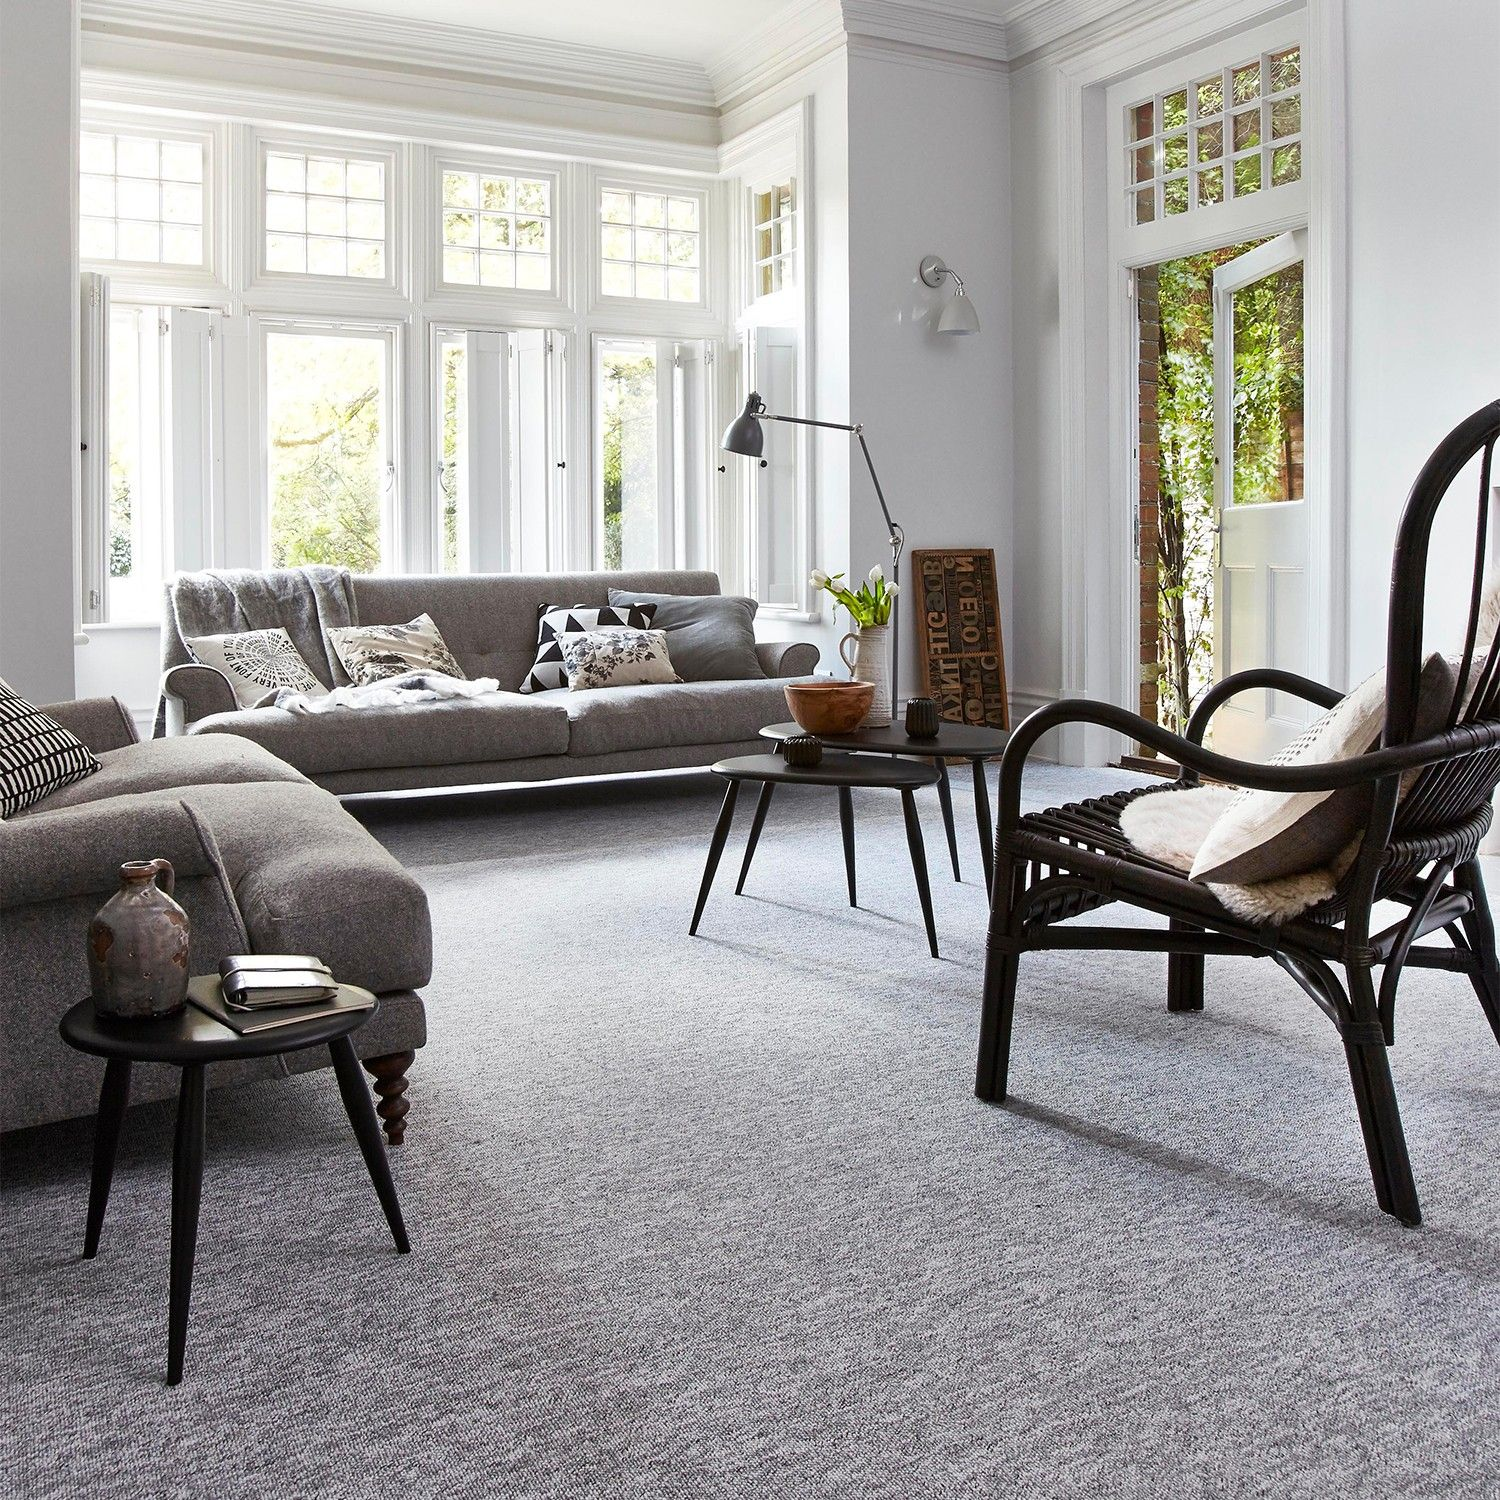 Off White Walls Grey Carpet Image result for light grey carpet white walls